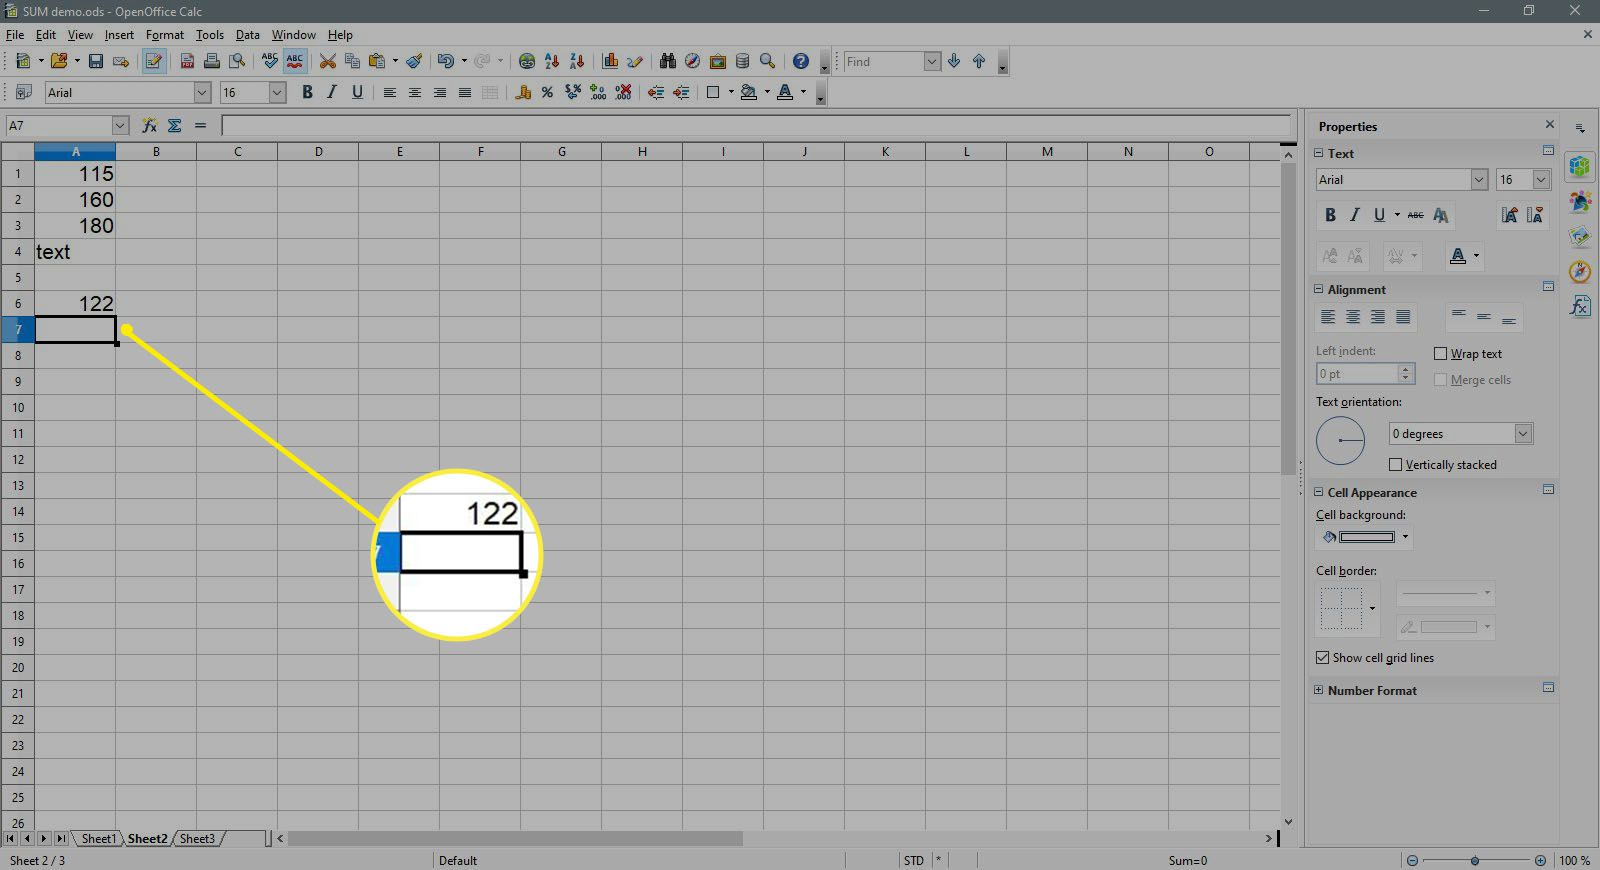 The cell A7 is selecting in OpenOffice Calc.